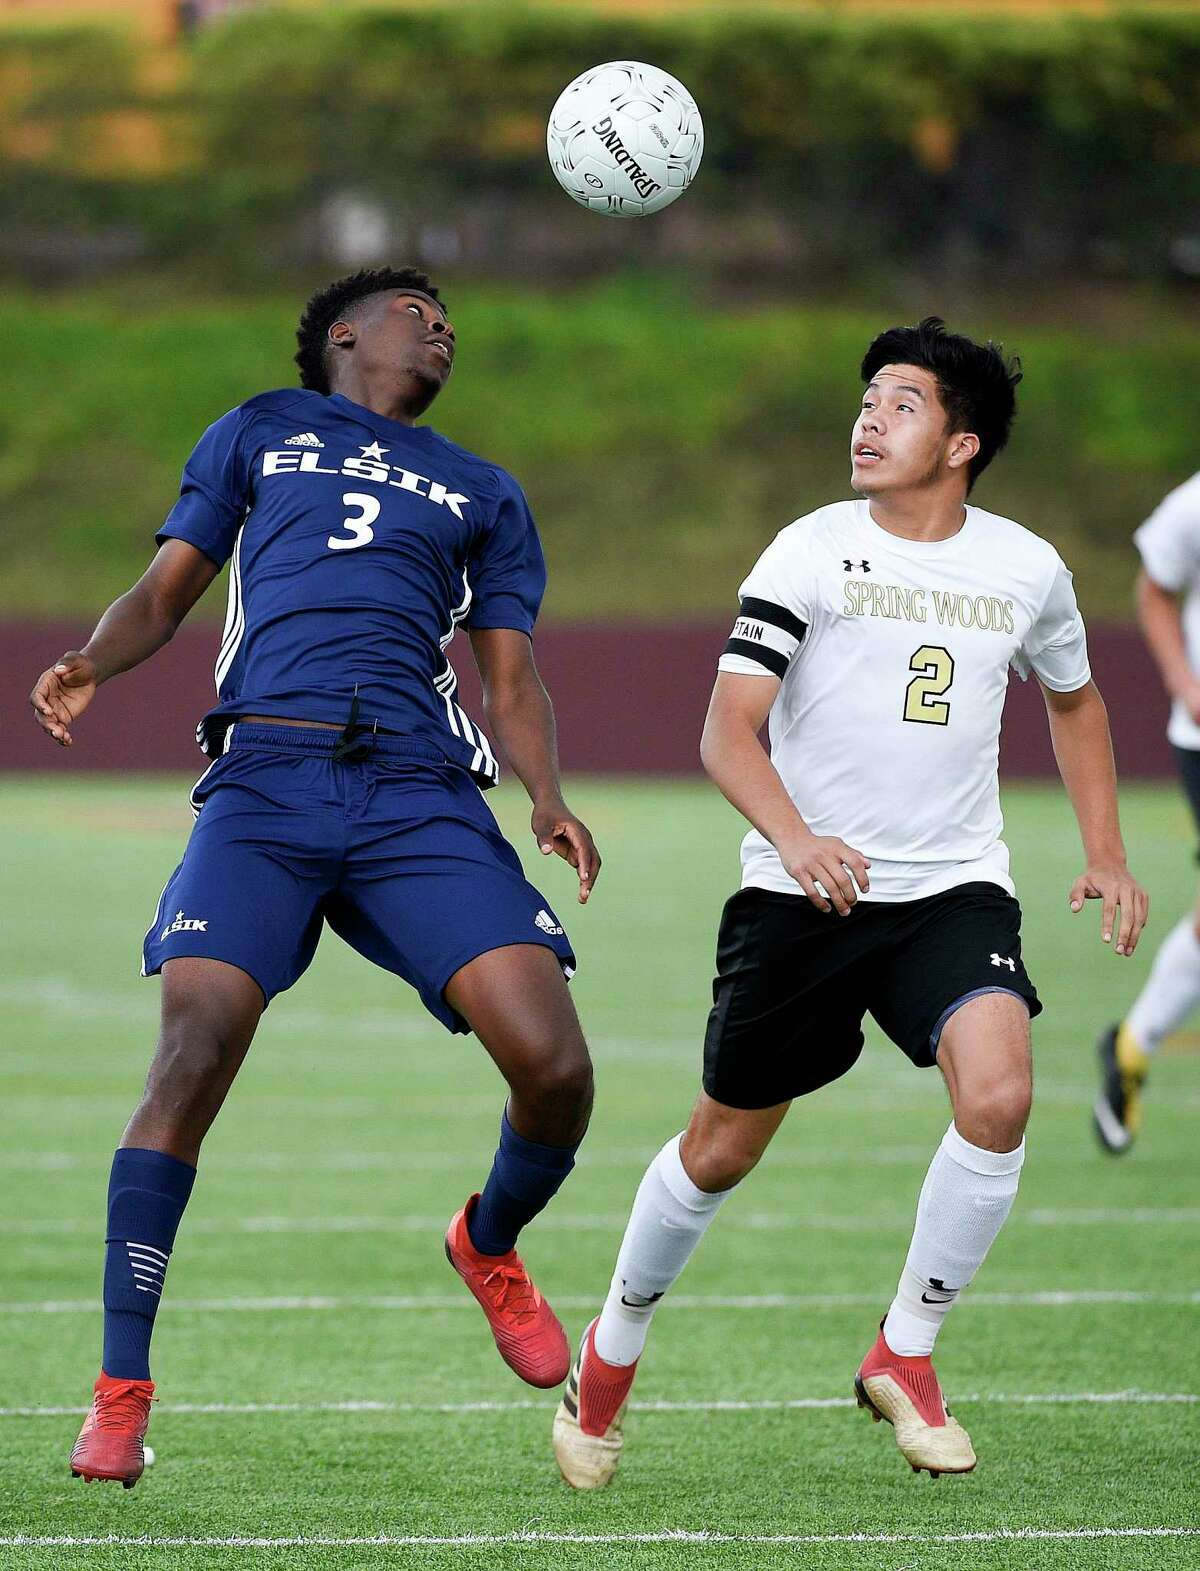 Elsik defender Samuel Nseng (3) heads the ball as Spring Woods defender Walter Constanza defends during the first half of a 6A region 3 final high school soccer match, Saturday, April 13, 2019, in Deer Park.